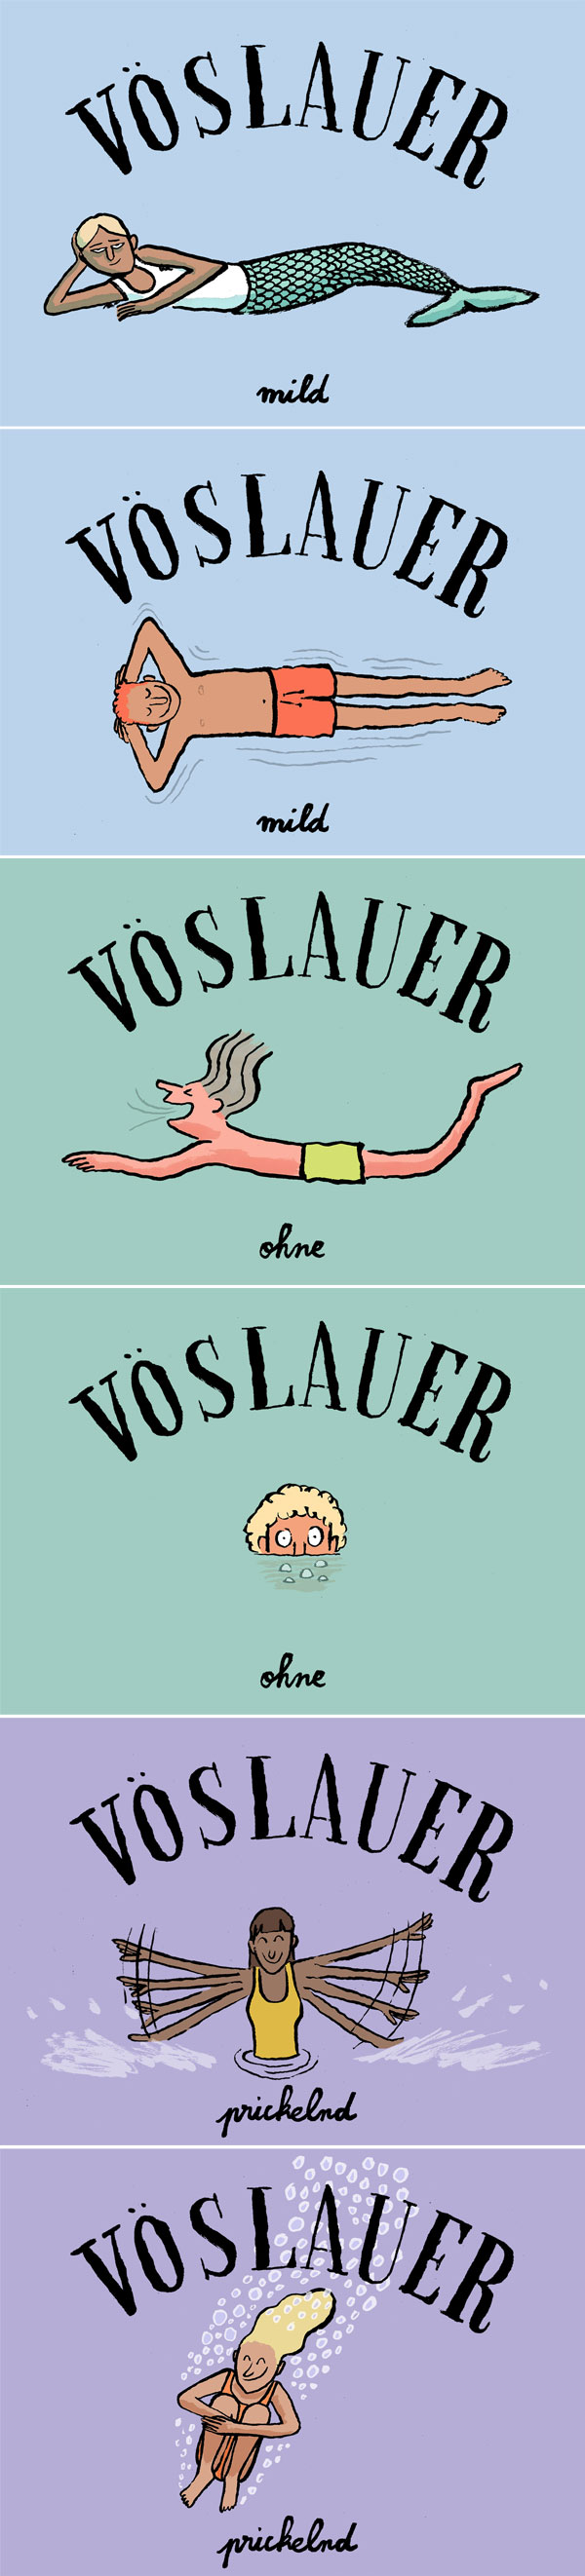 Jean Jullien for Vöslauer | design